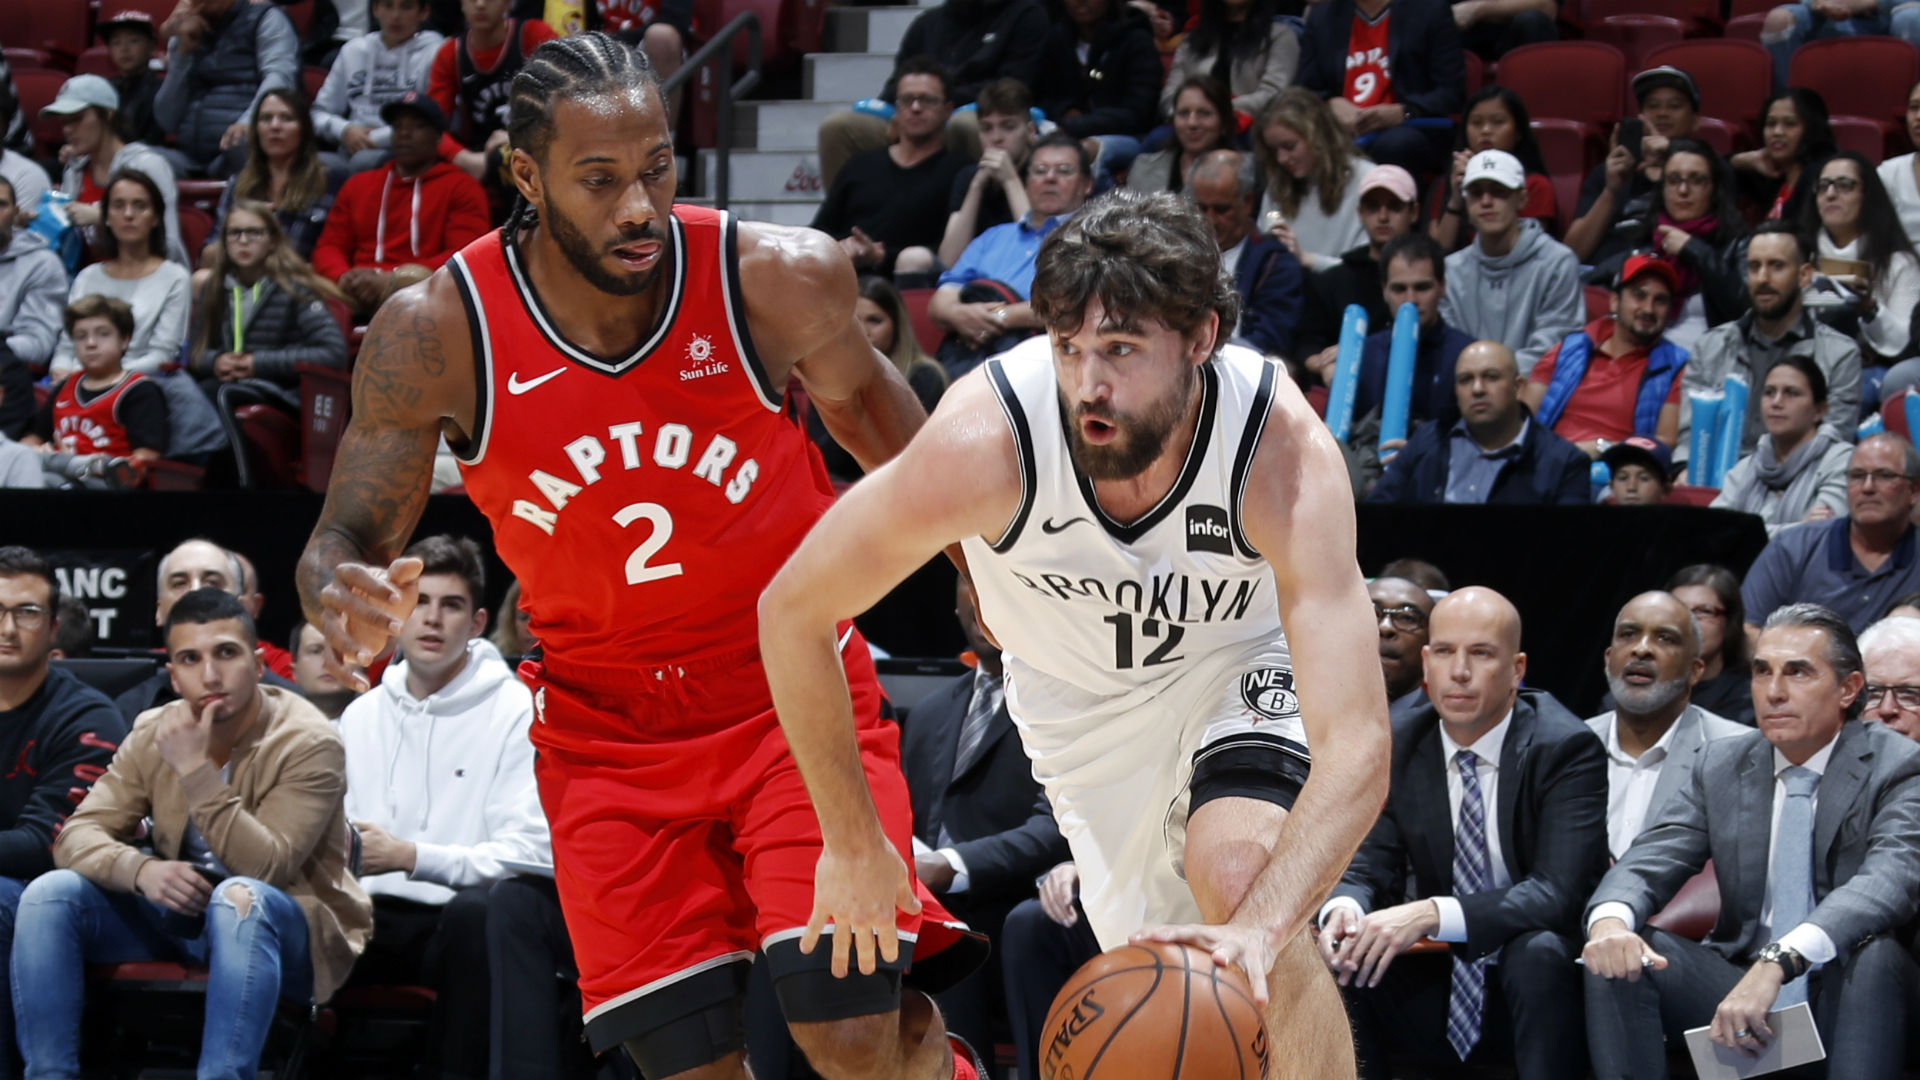 Raptors News: Toronto Raptors Vs. Brooklyn Nets: Game Preview, Live